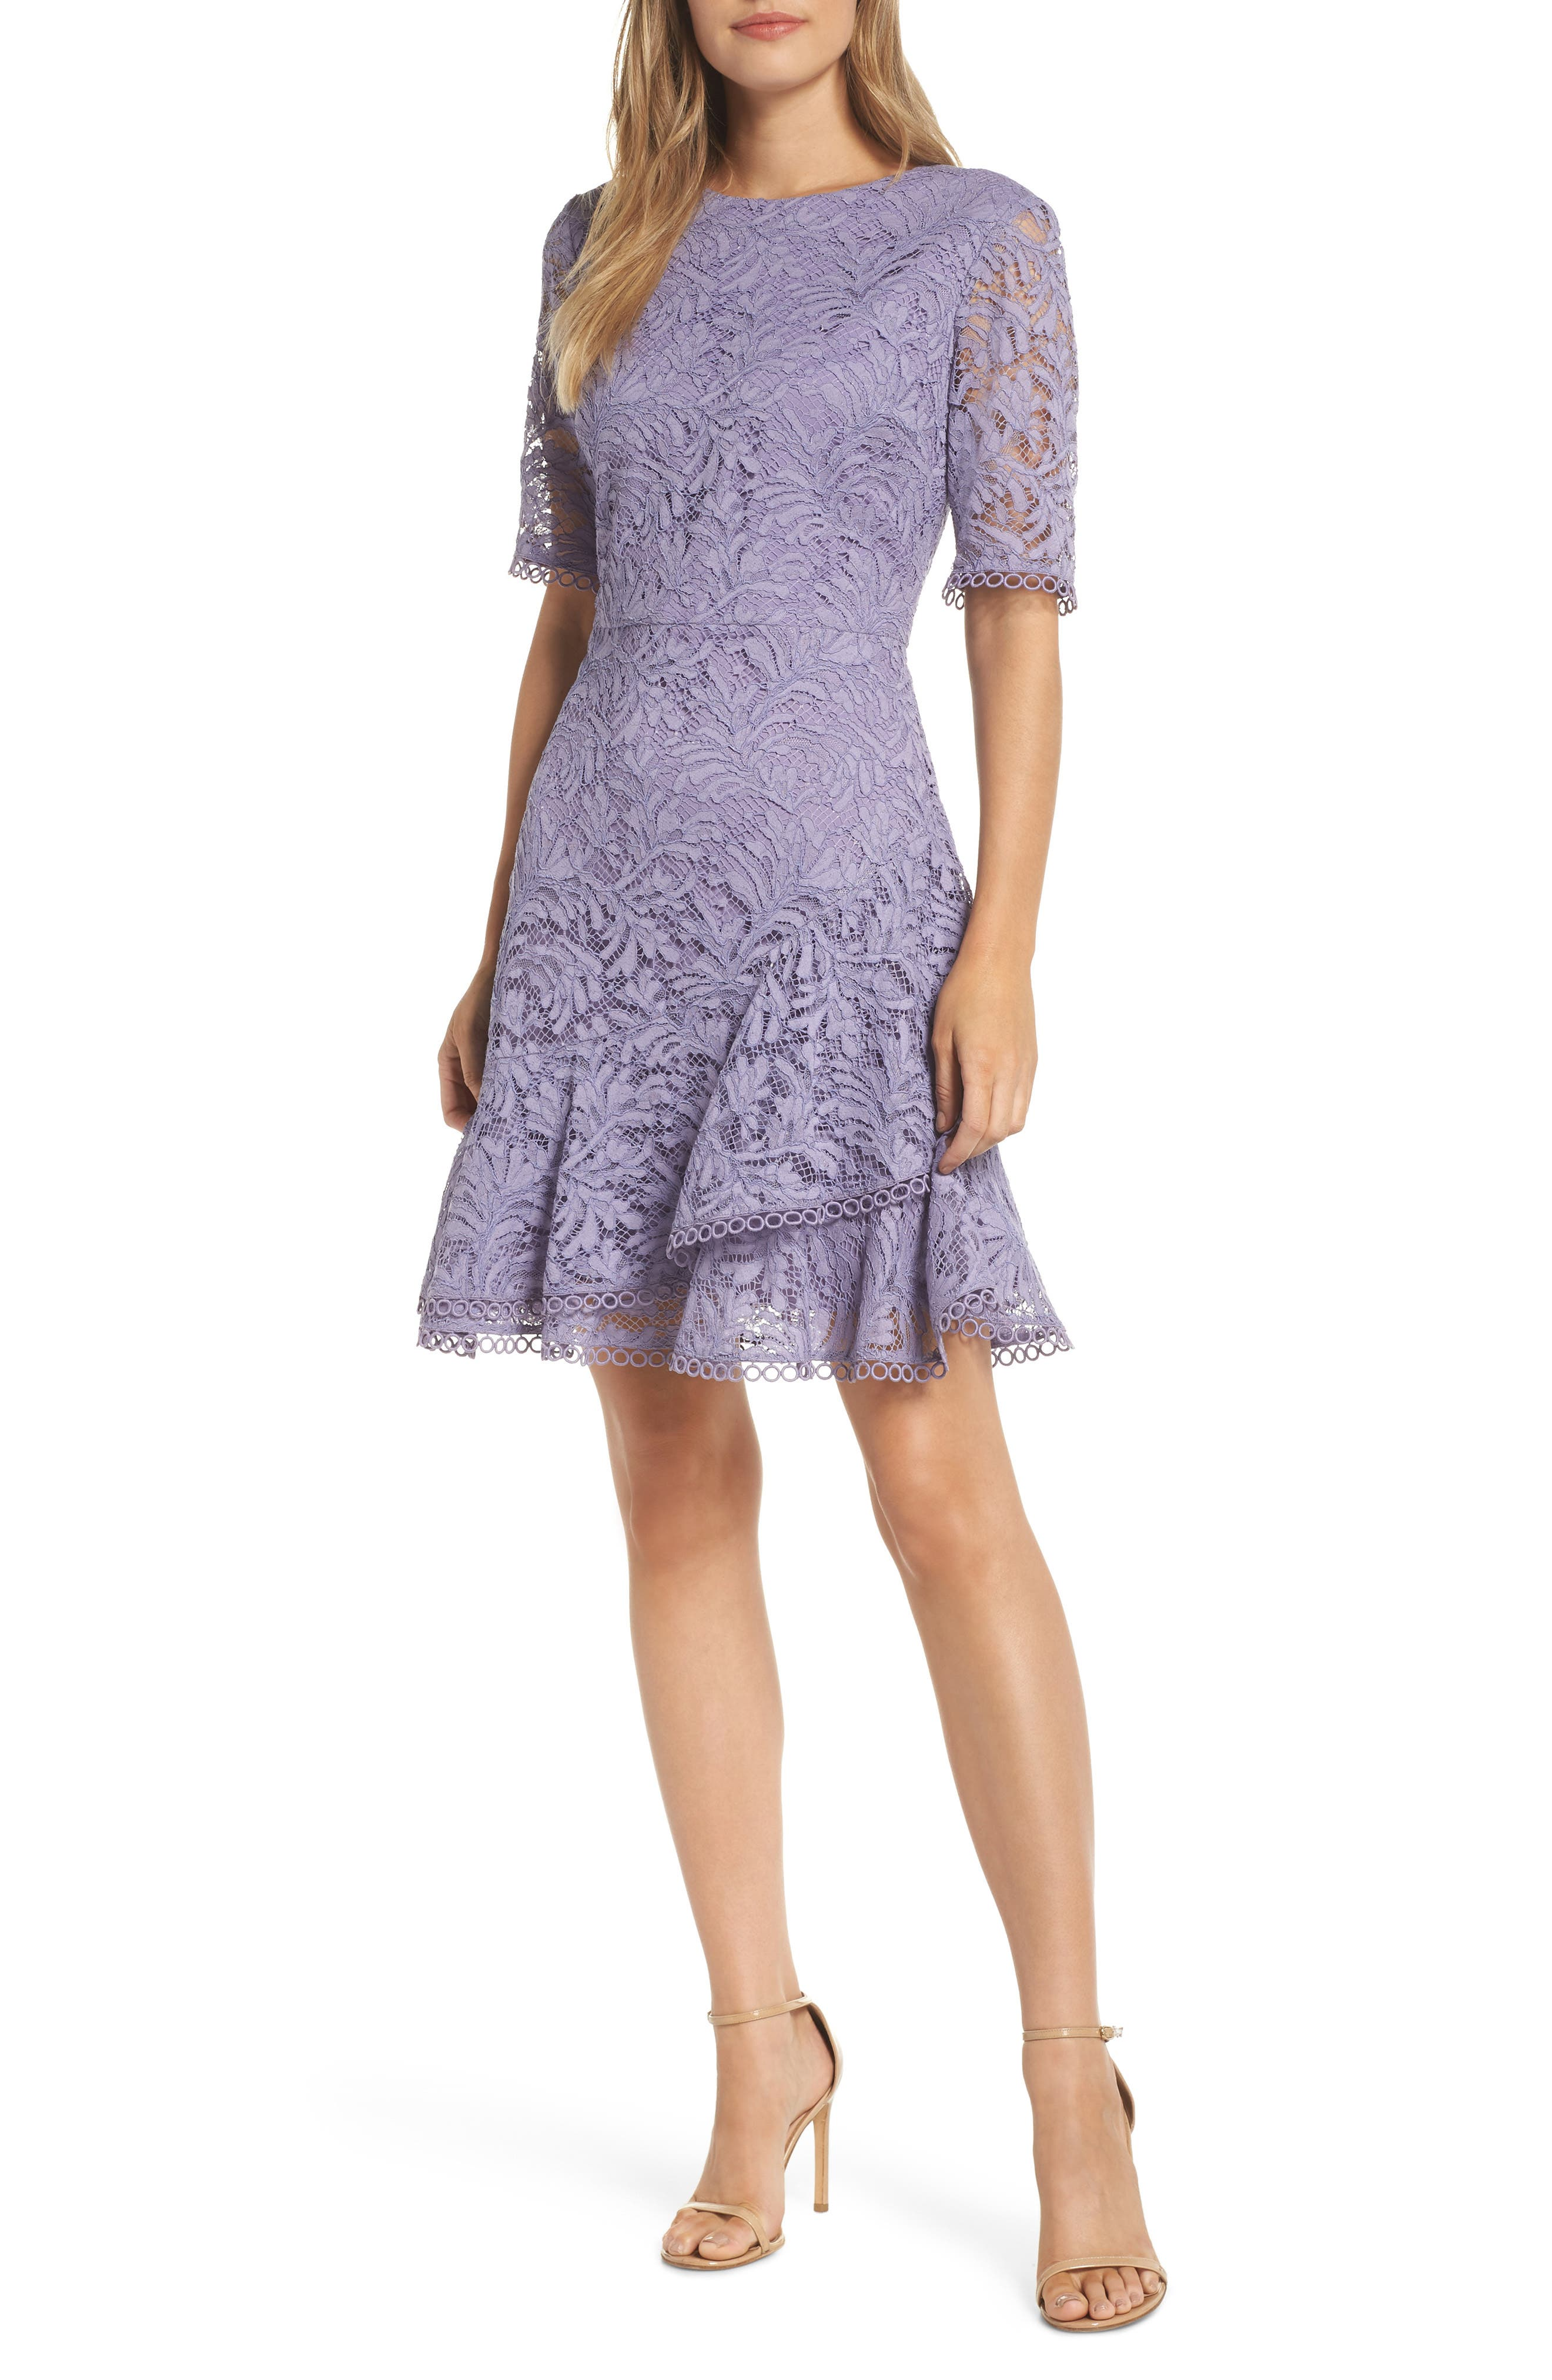 Vince Camuto Asymmetrical Ruffle Lace Fit & Flare Dress, Purple